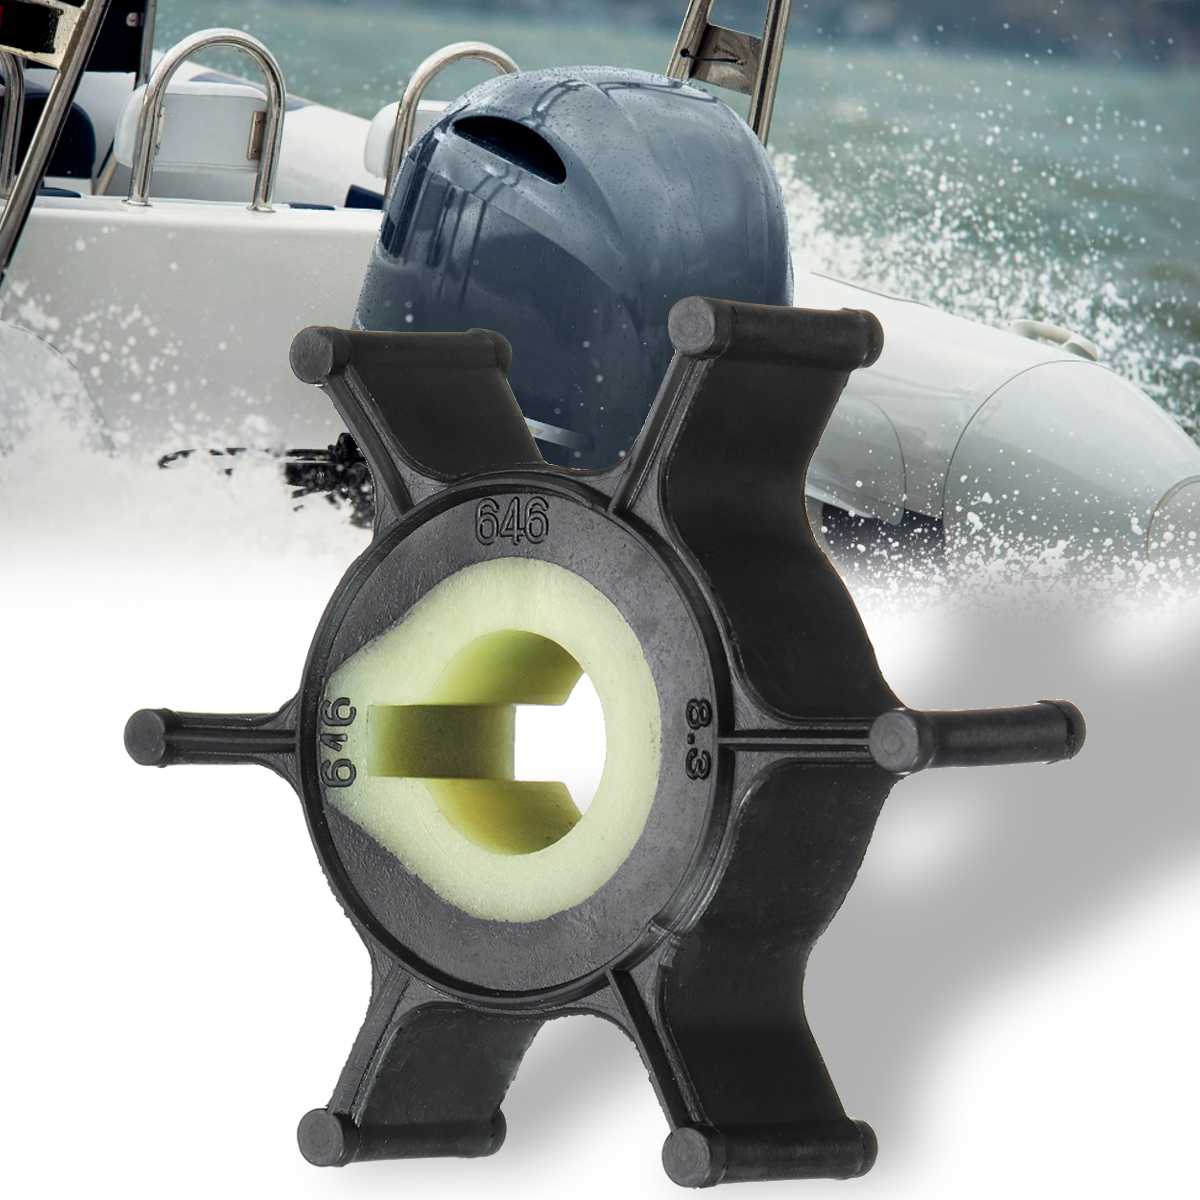 for <font><b>Yamaha</b></font> <font><b>2HP</b></font> Boat <font><b>Outboard</b></font> <font><b>Motor</b></font> 646-44352-01 Replacement Water Pump Impeller for Mariner 47-80395M for Sierra 18-3072 Rubber image